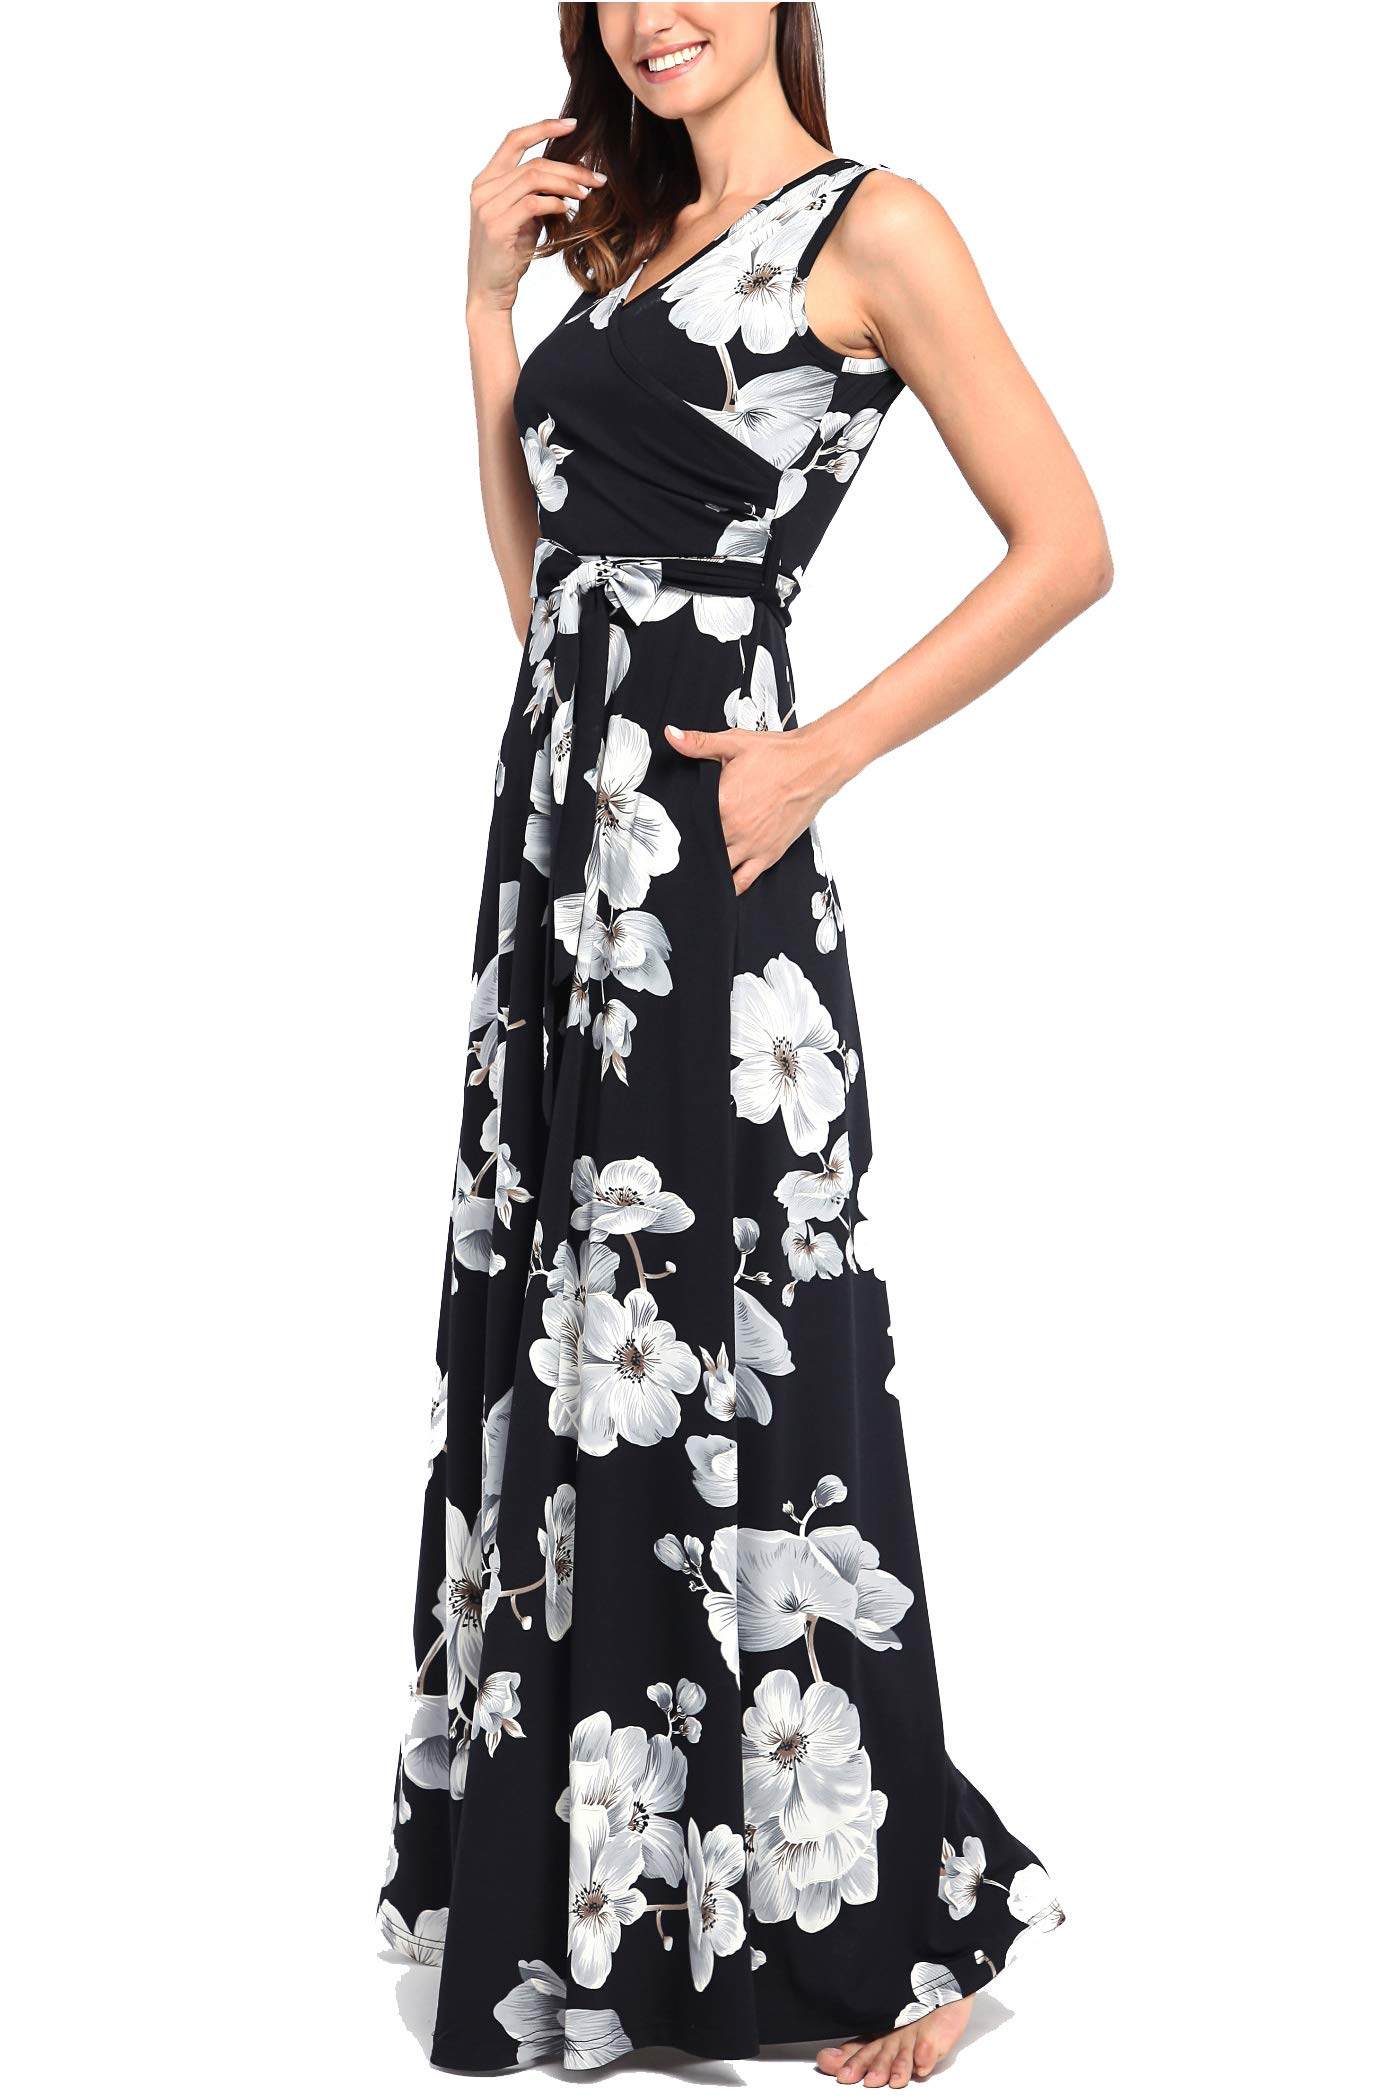 Comila Floral Dresses for Women Casual Beach Holiday, Sexy Warp V Neck High Waist with Bow Fashion Vintage Floral Printed Sleeveless Casual Tank Dress with Pockets Black M(US8-10) by Comila (Image #5)